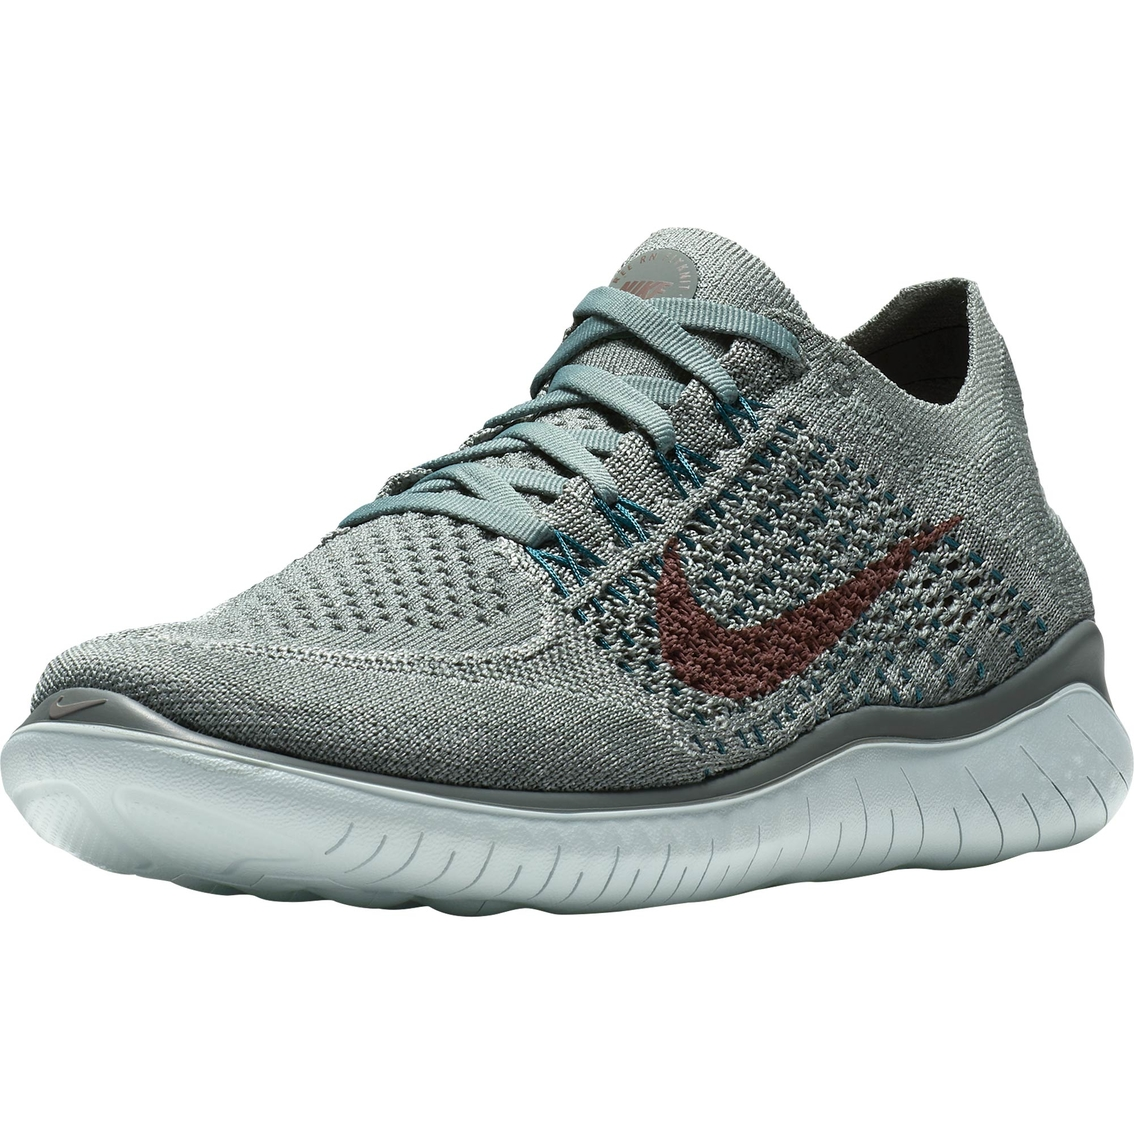 b4b79d33917 Nike Women s Free Rn Flyknit 2018 Running Shoes